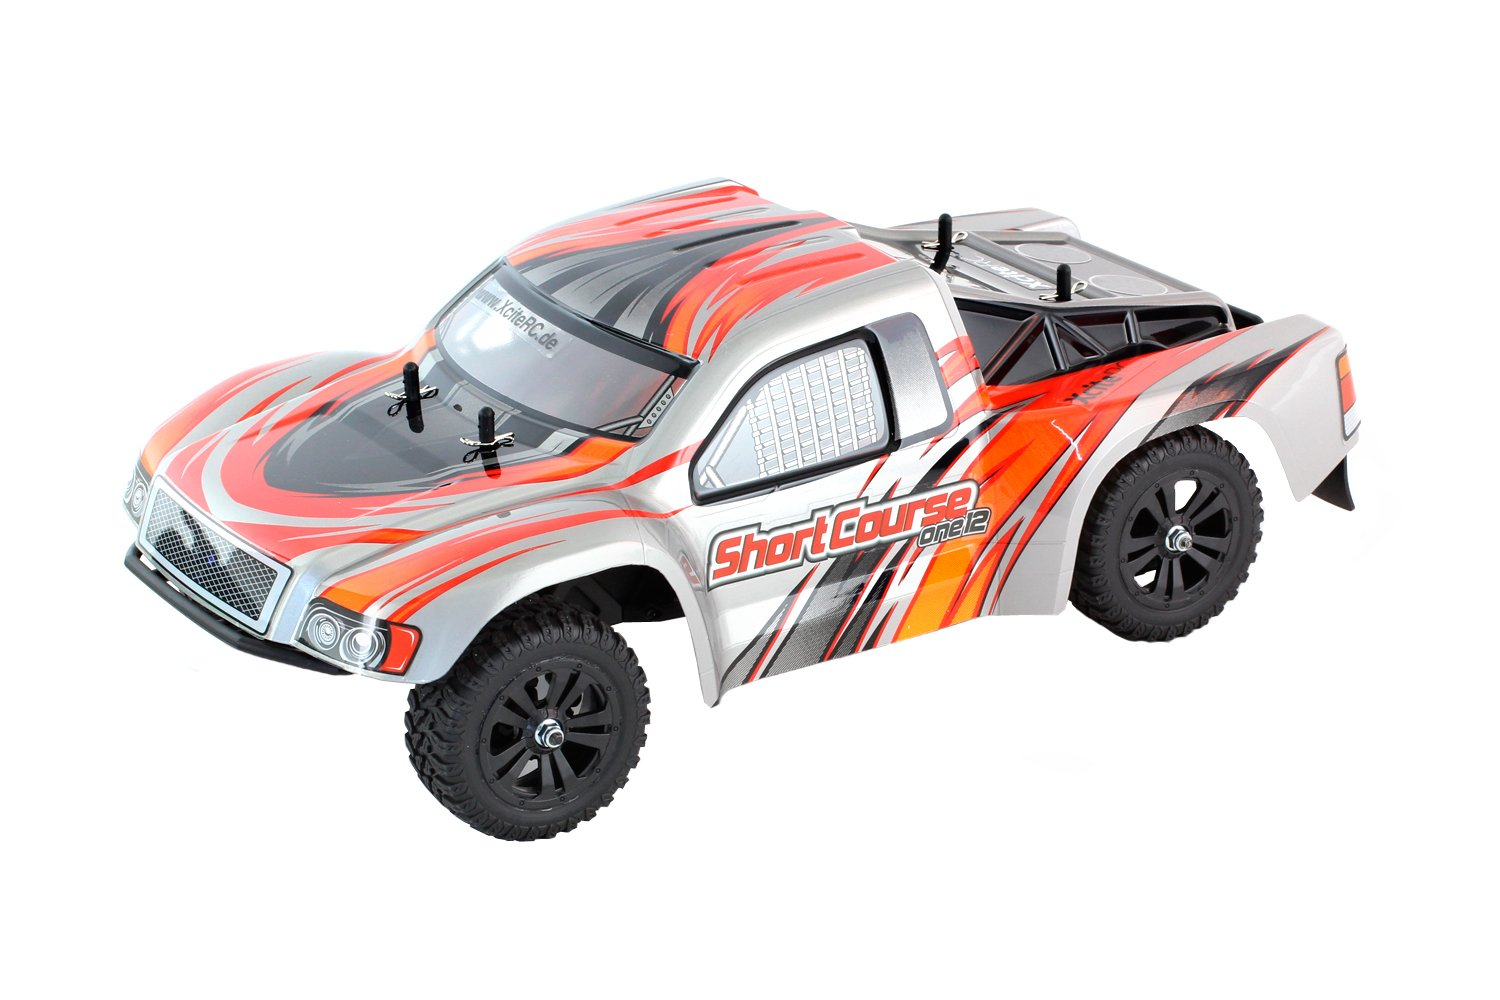 ventas en linea XciteRC XciteRC XciteRC Shortcourse one12 - Radio-Controlled (RC) land vehicles (Ión de litio, Cochecito de juguete)  nueva gama alta exclusiva